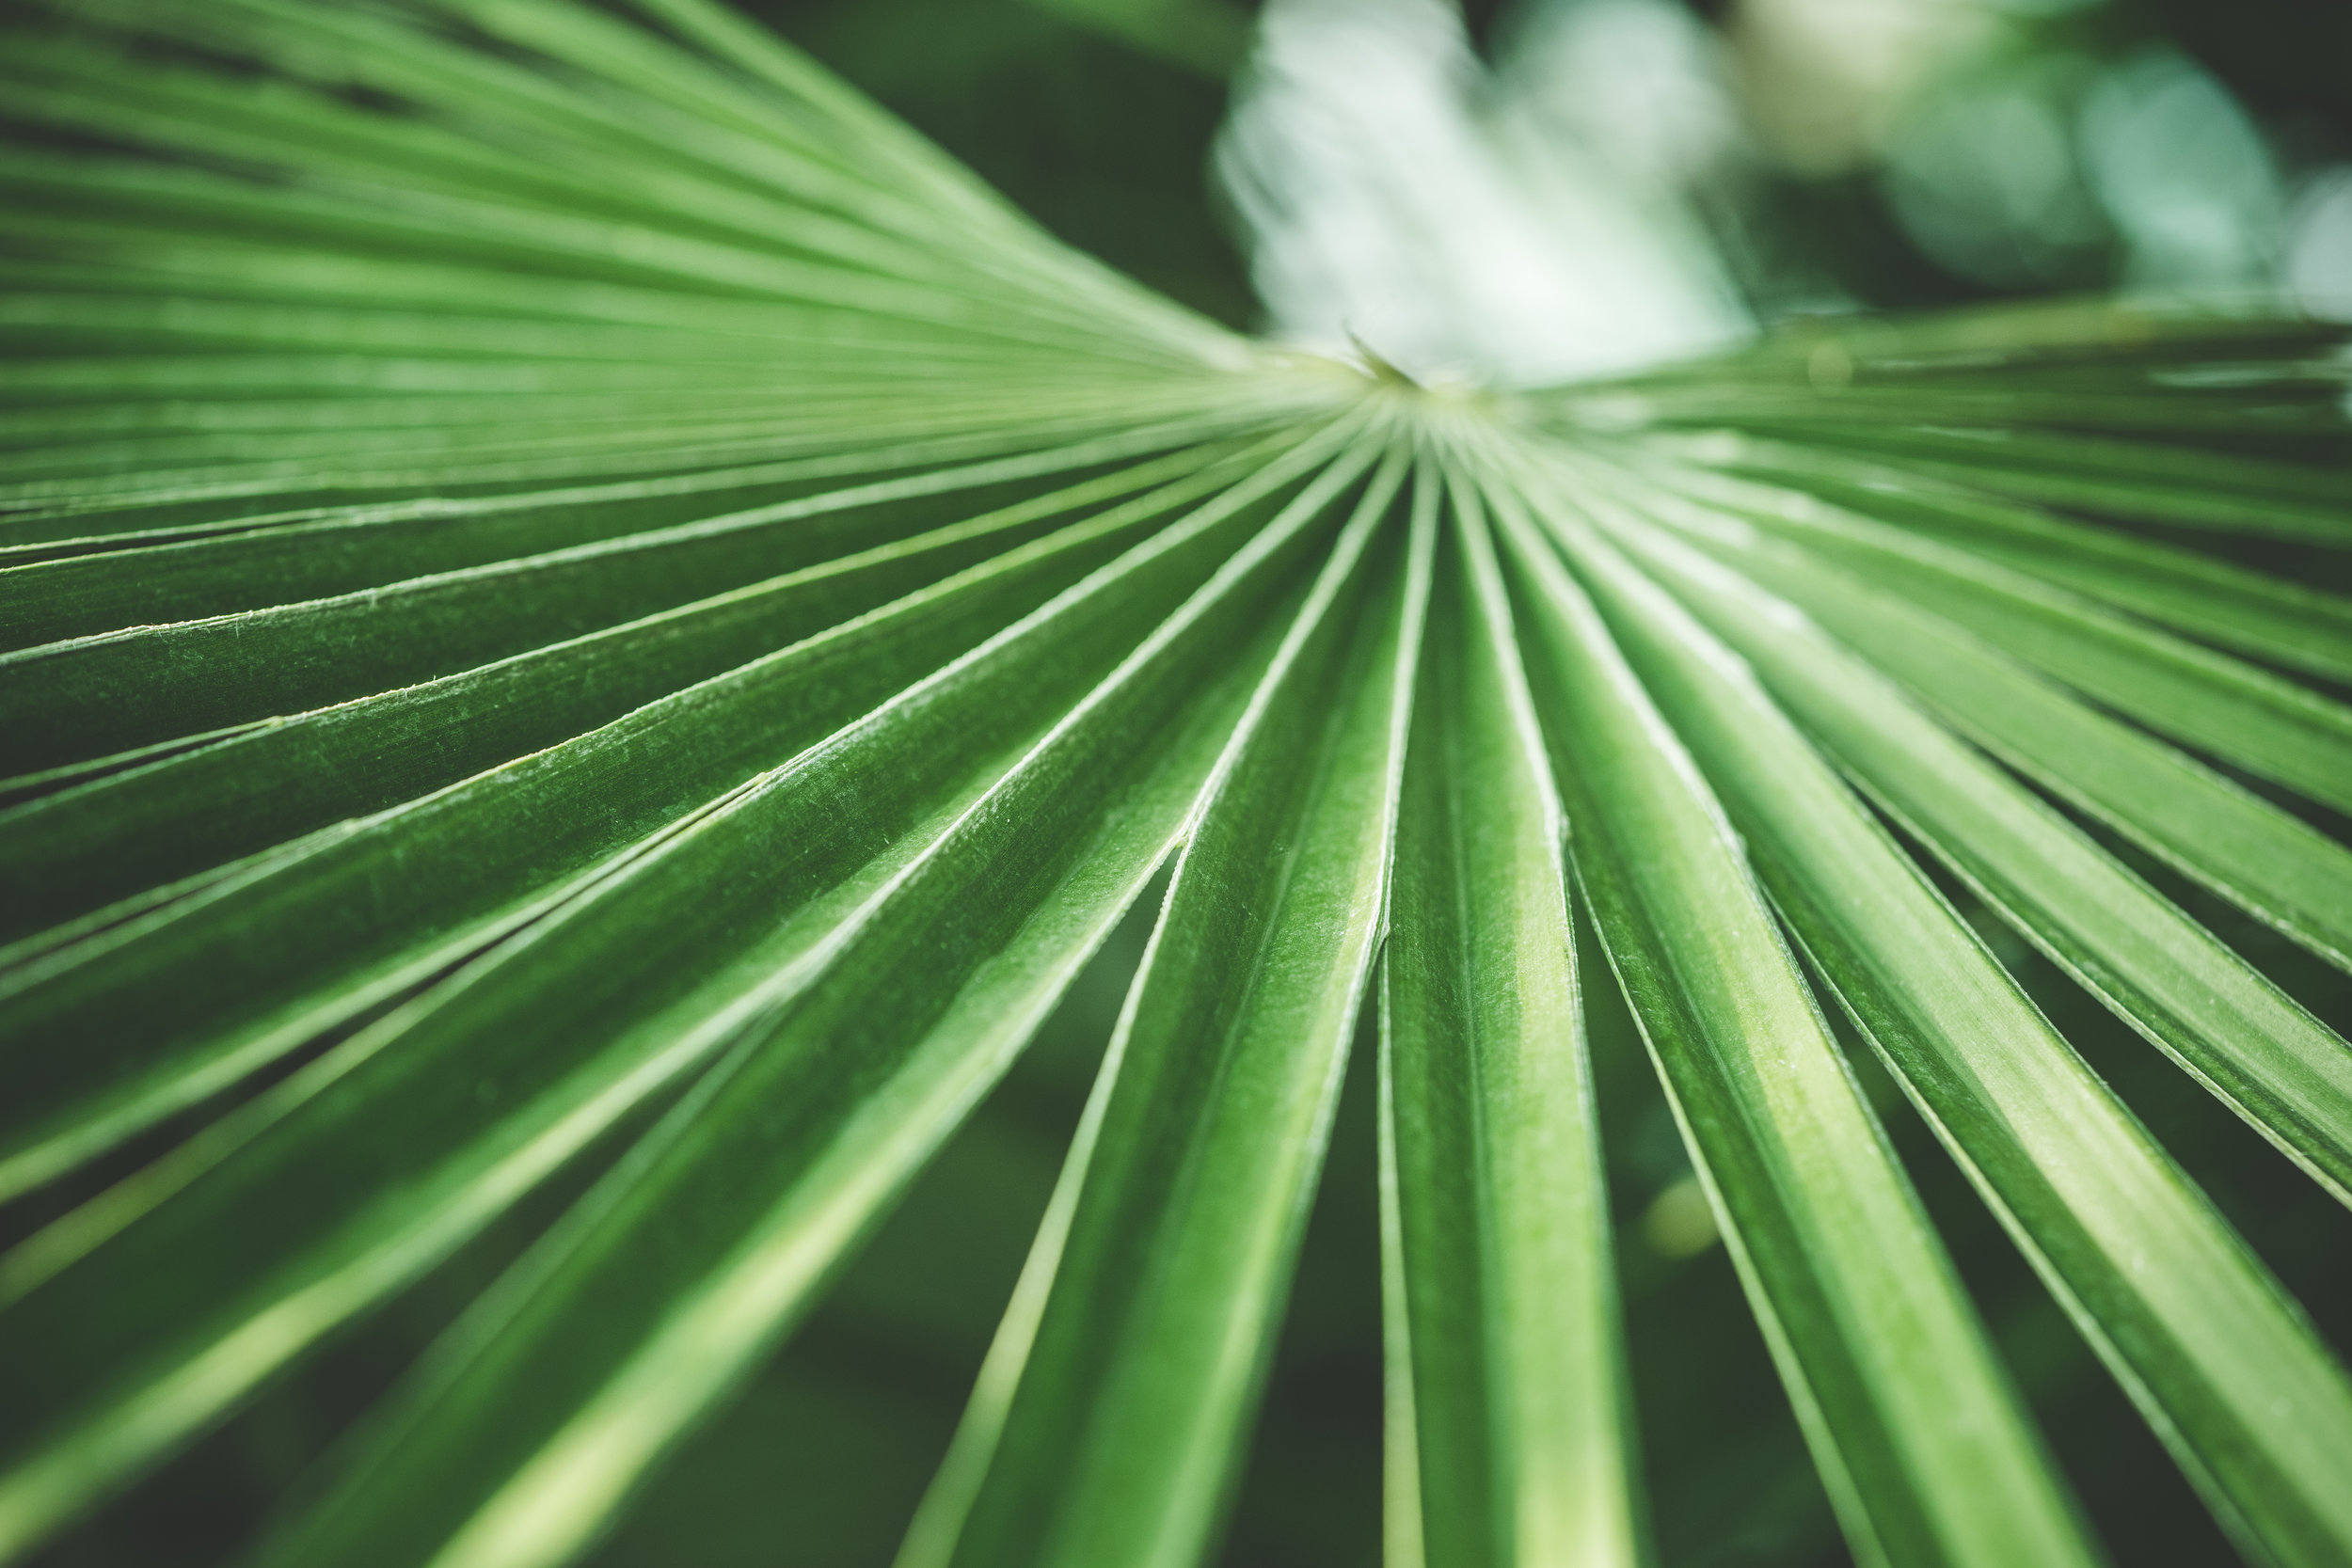 green-palm-tropical-plant-picjumbo-com.jpg